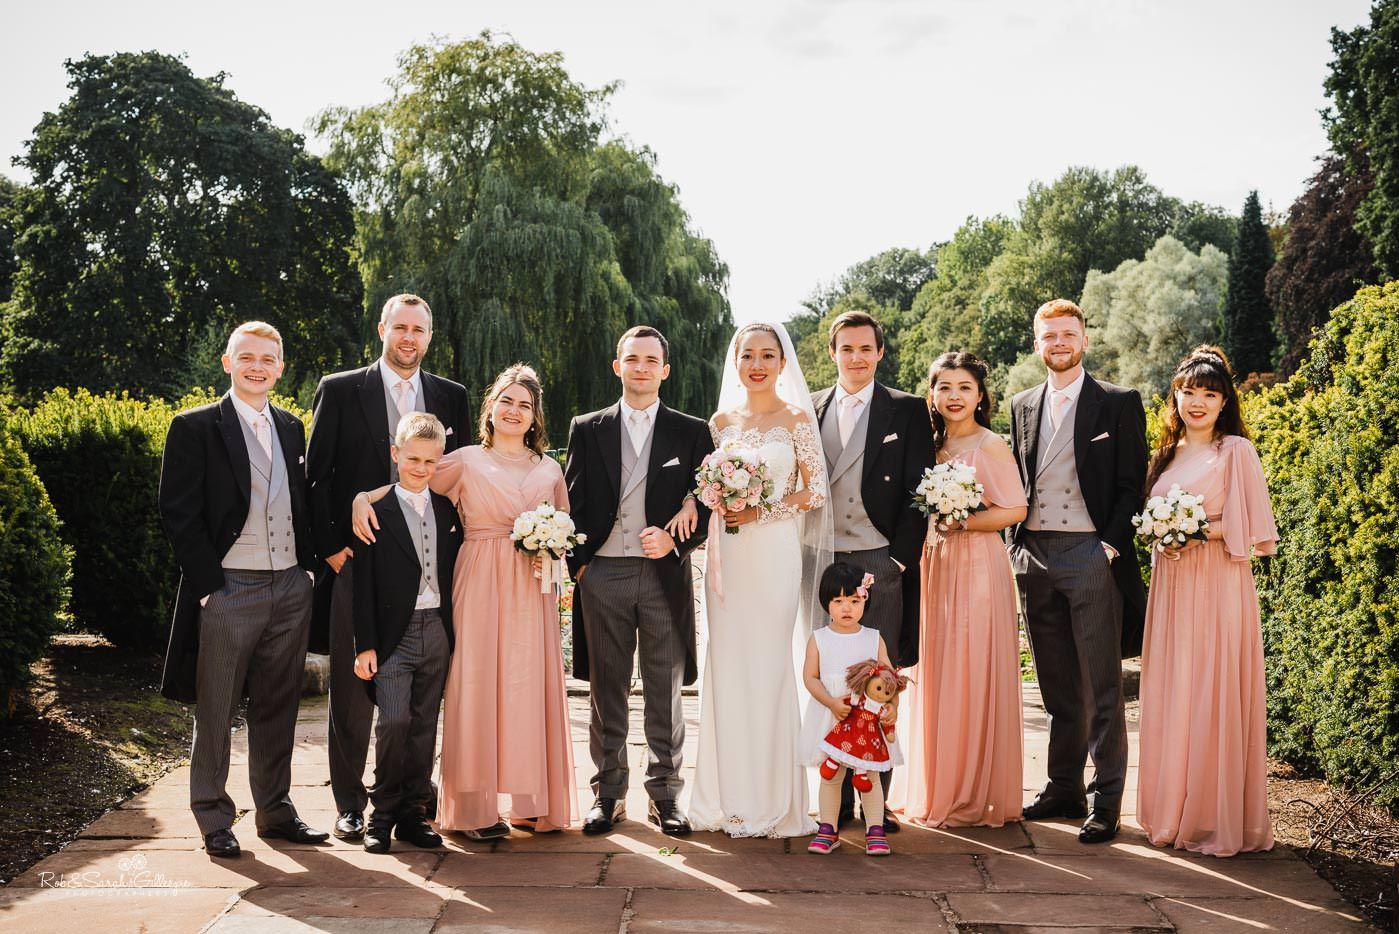 Wedding group photo of bridal party at Coombe Abbey